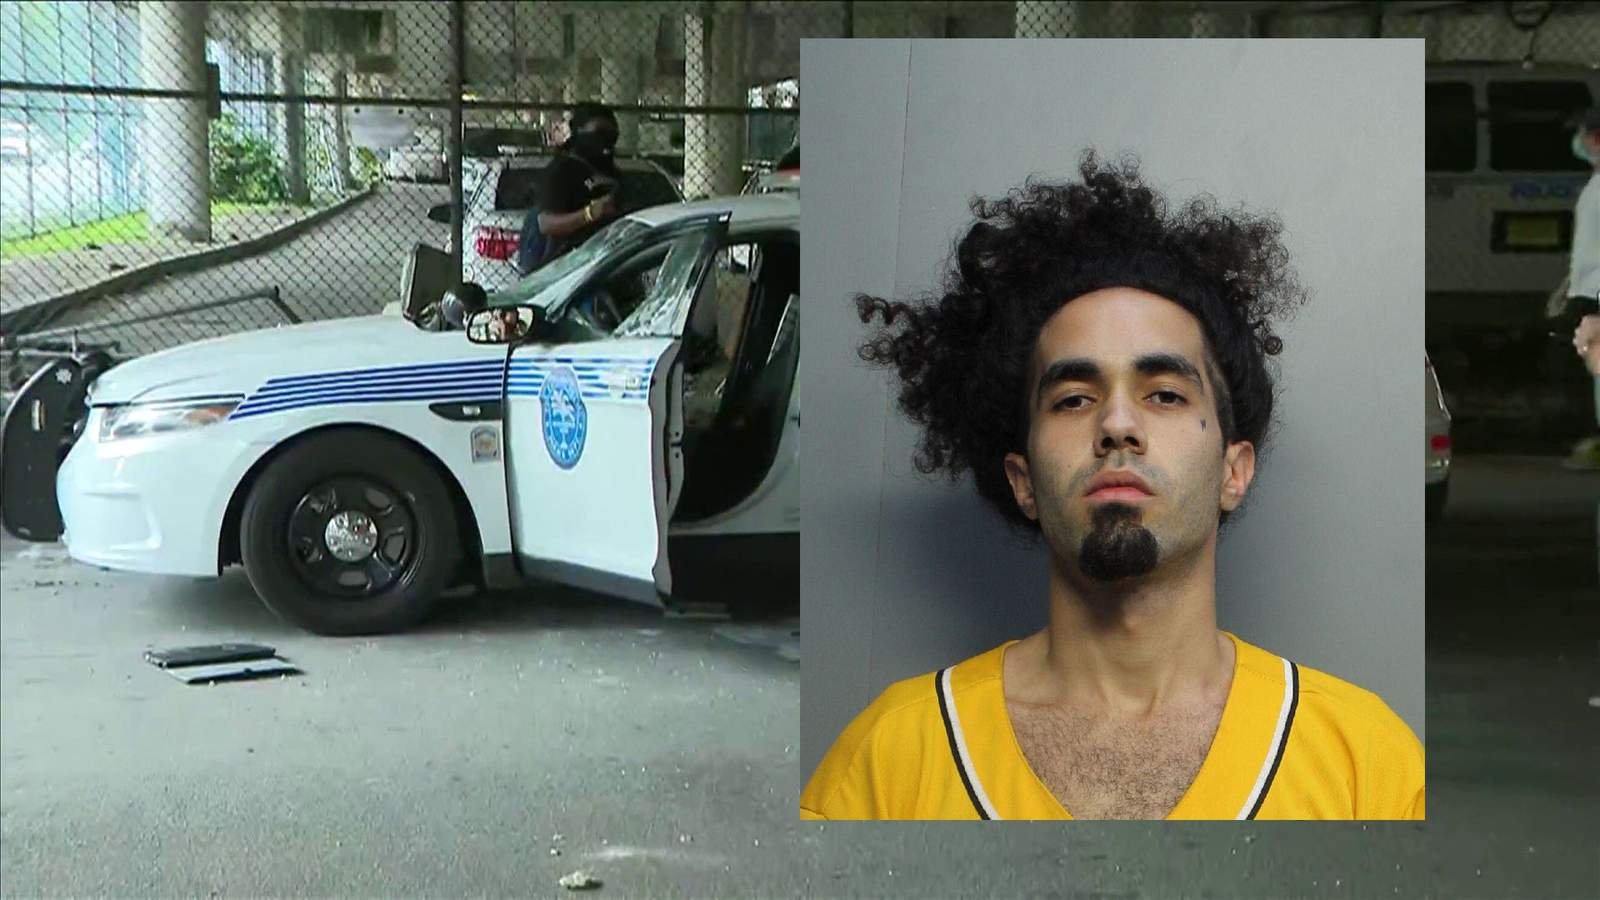 Mugshot for Marco Lopez, who was arrested for damaging police cars during a George Floyd protest in Miami on May 30.